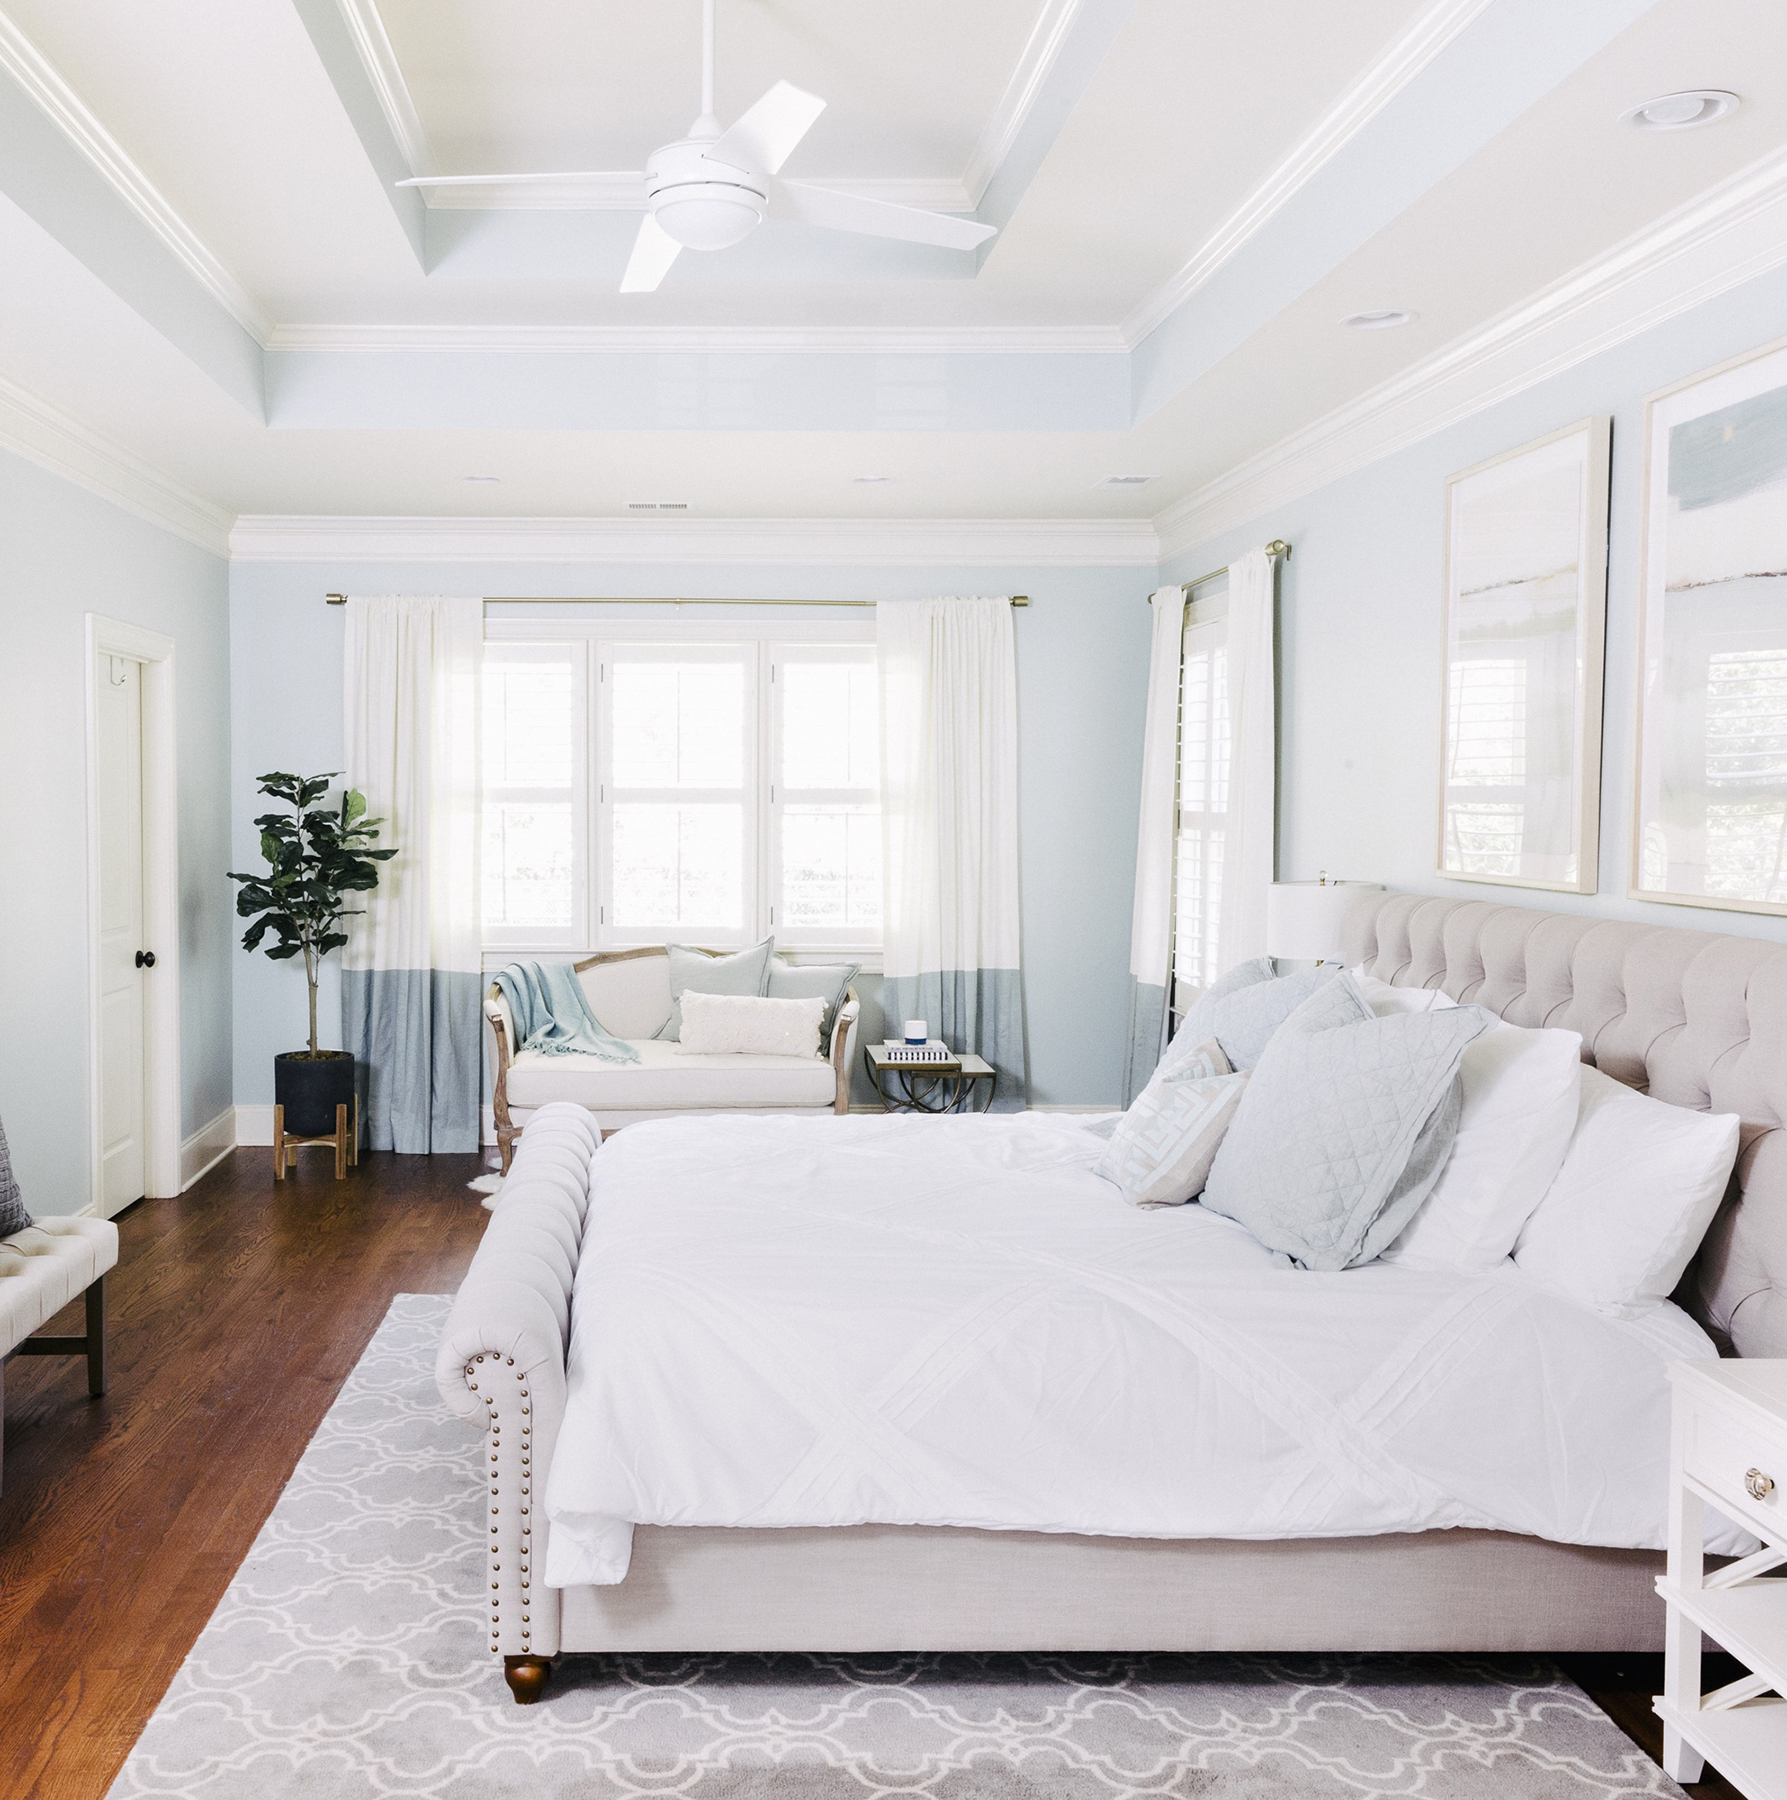 Bedroom with a cool palette